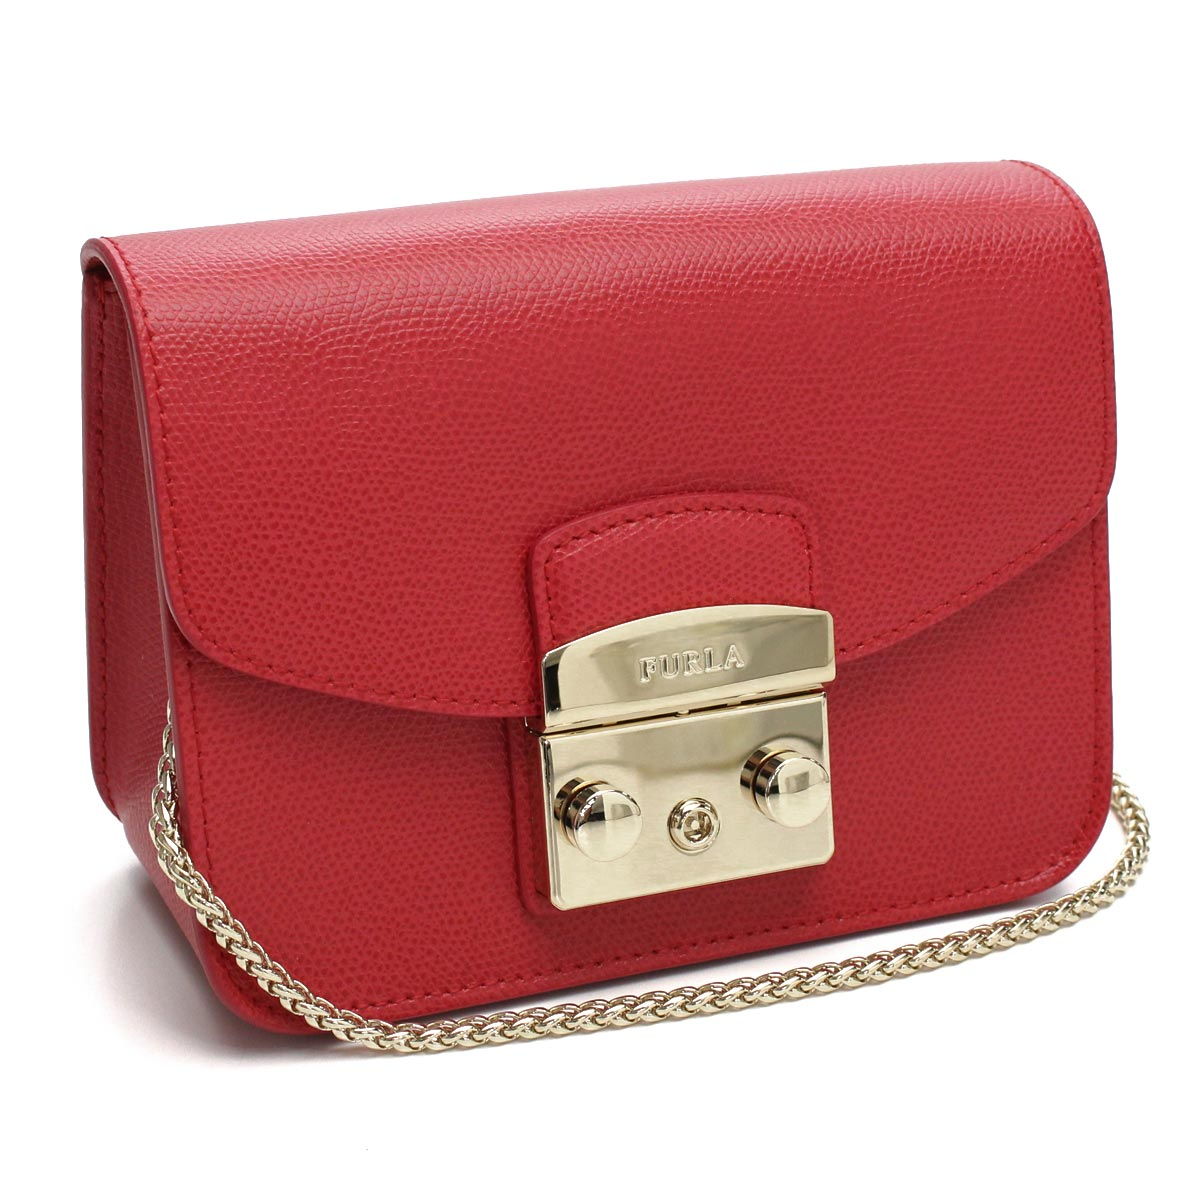 e87cff4fc59c2 Bighit The total brand wholesale  フルラ FURLA METROPOLIS MINI CROSSBODY  metropolis mini-crossbody bag BGZ7 851170 ARE RUB RUBY red system